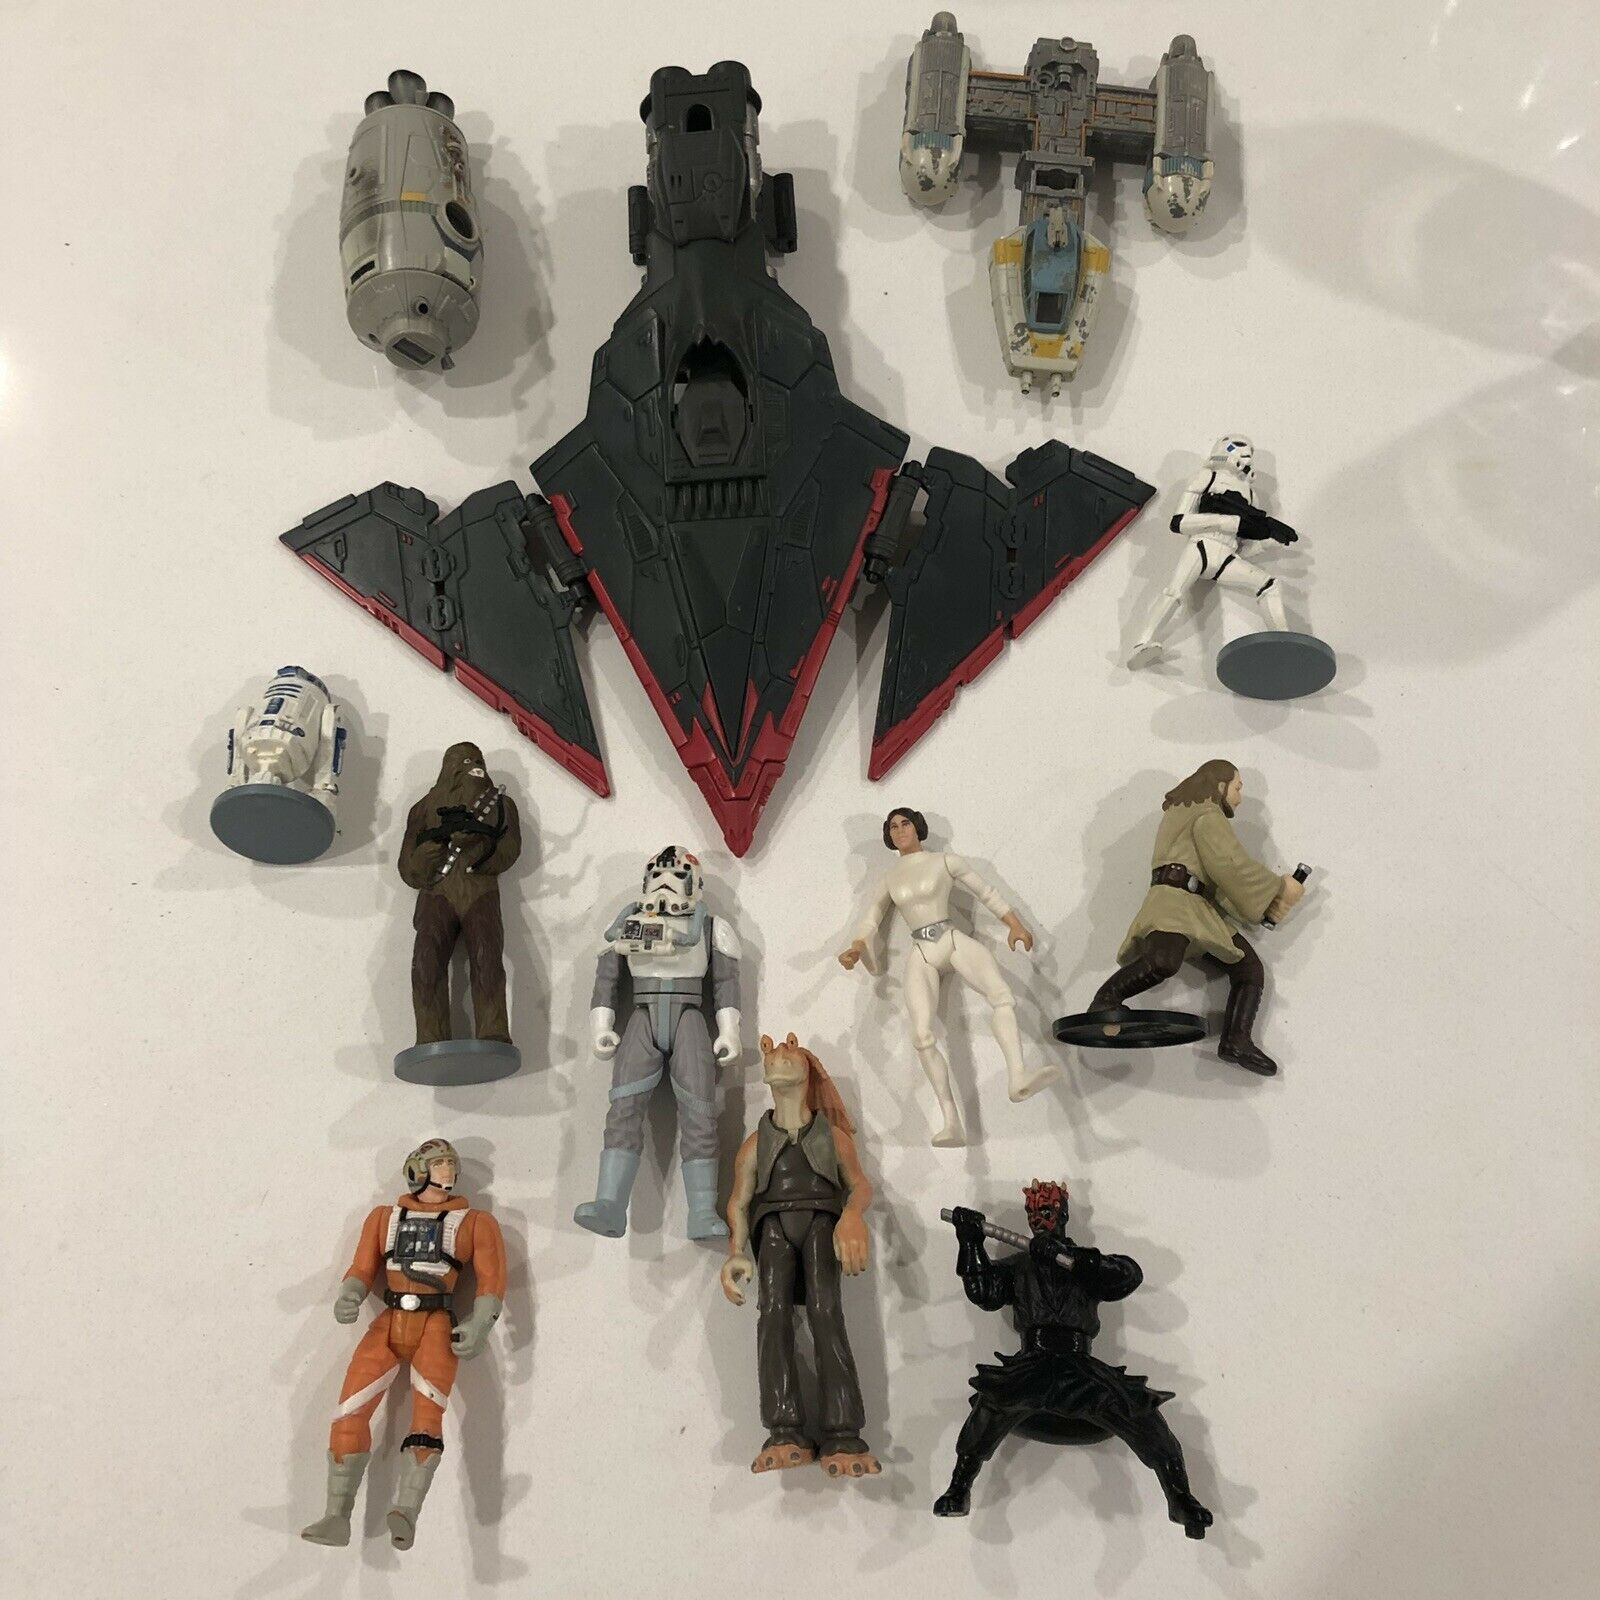 Star Wars Action Figure Toys From 1990s